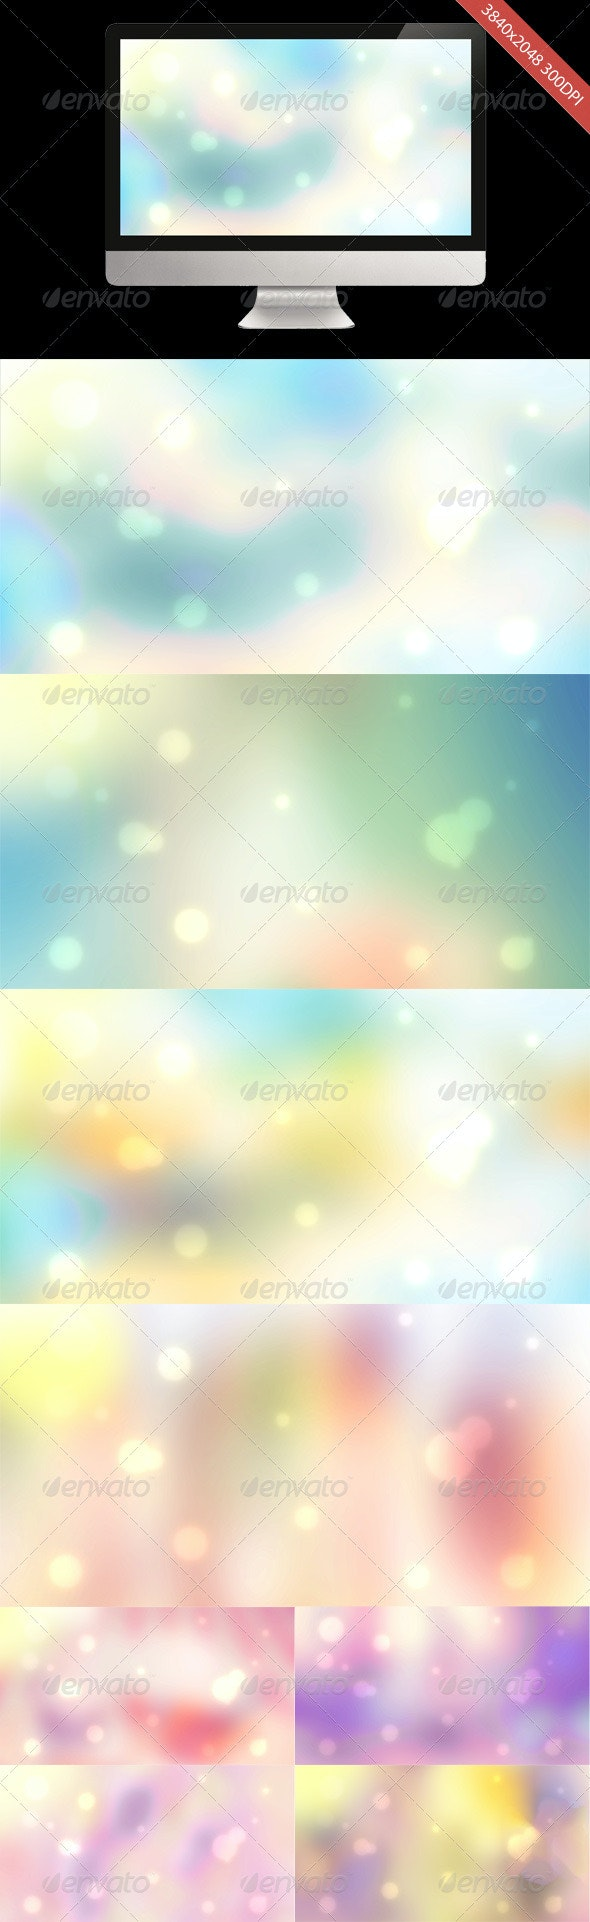 8 Blur Abstract Backgrounds - Abstract Backgrounds